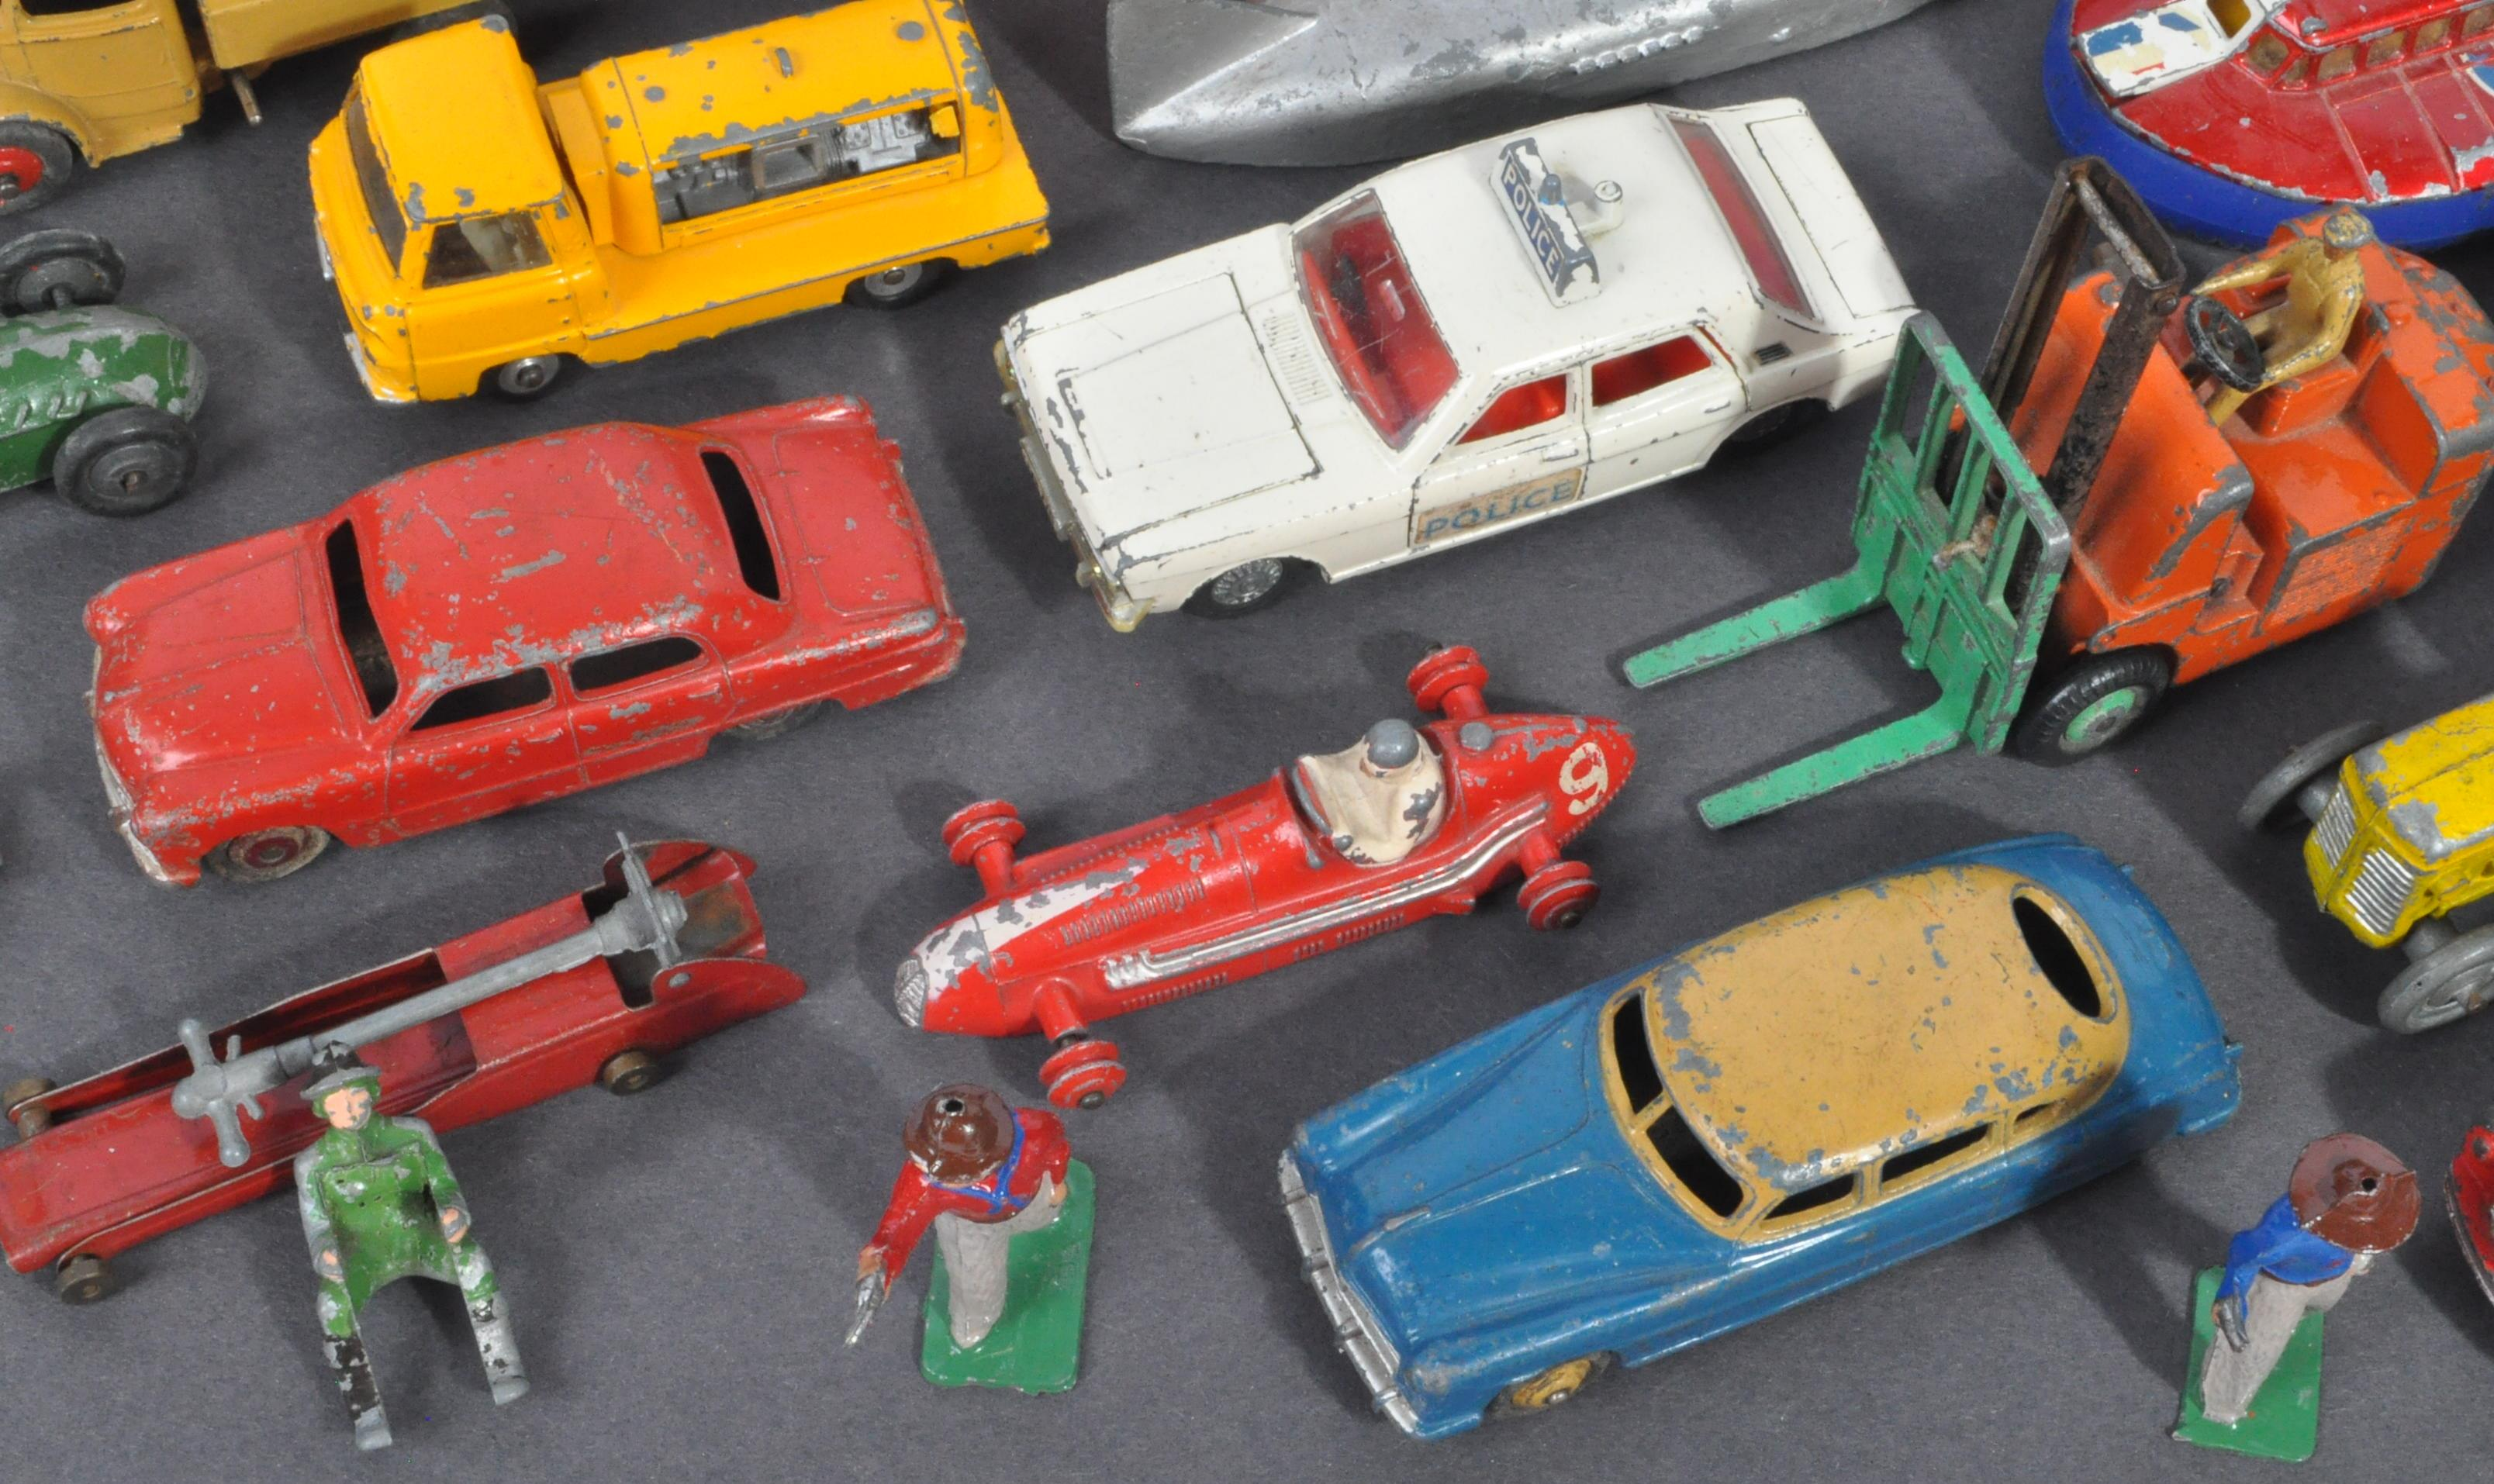 LARGE COLLECTION OF DINKY & OTHER DIECAST MODELS - Image 4 of 6